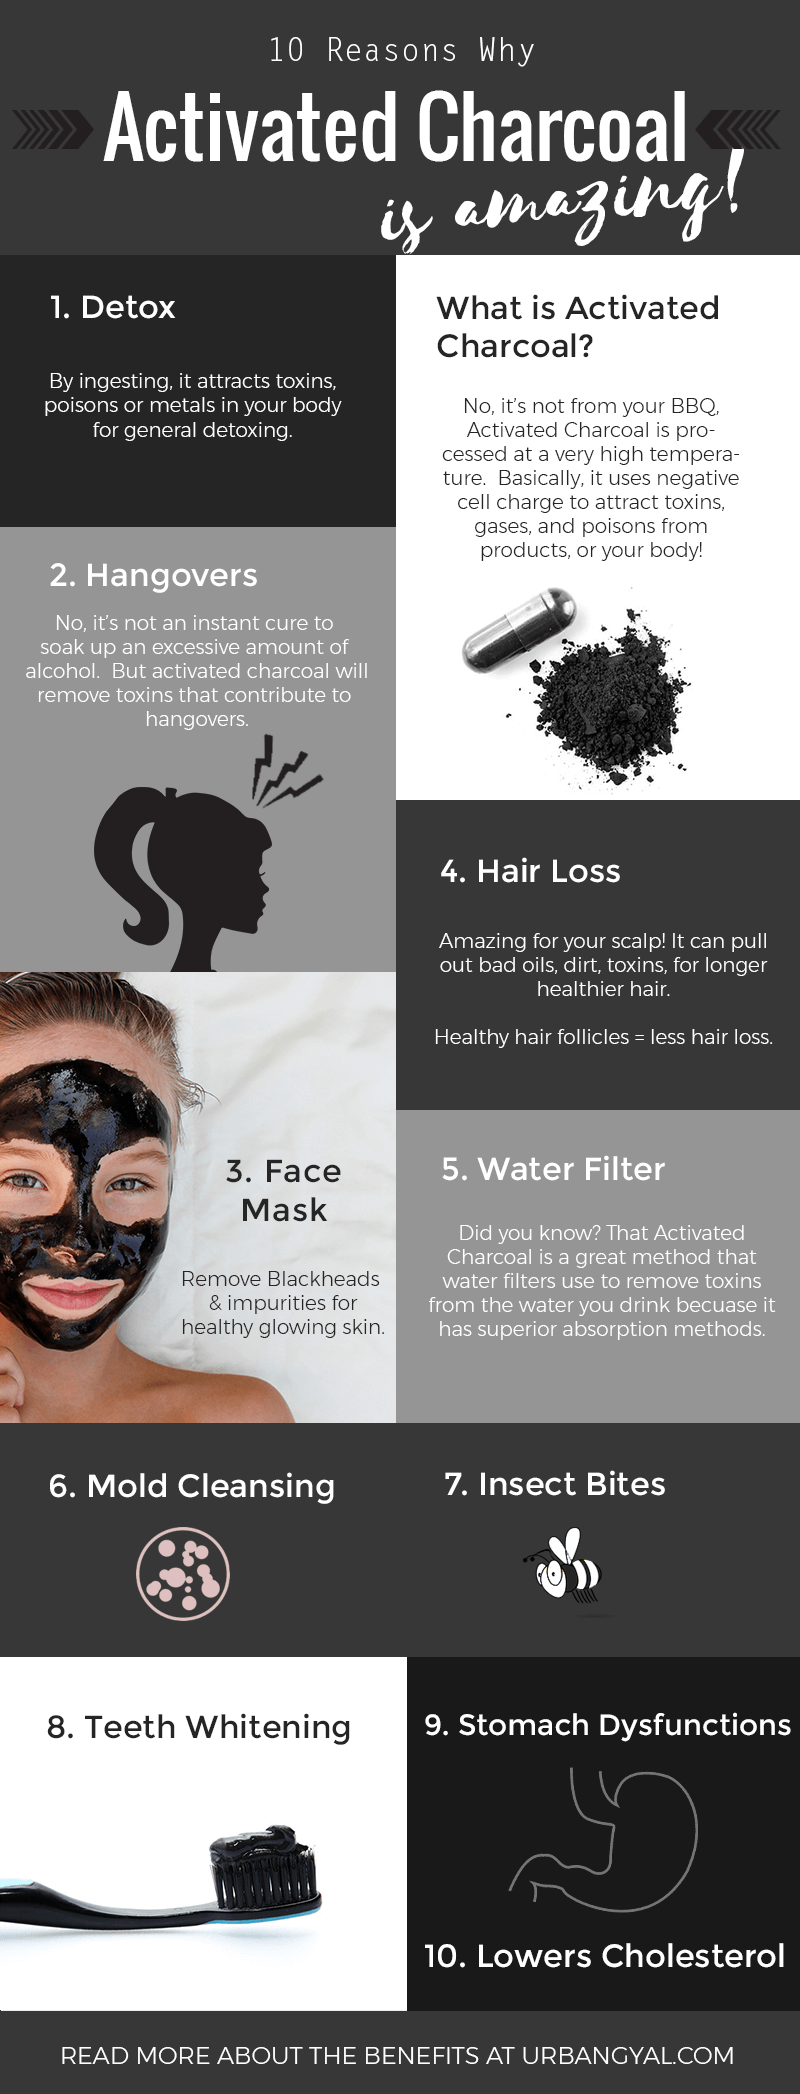 Reasons why Activated Charcoal is amazing